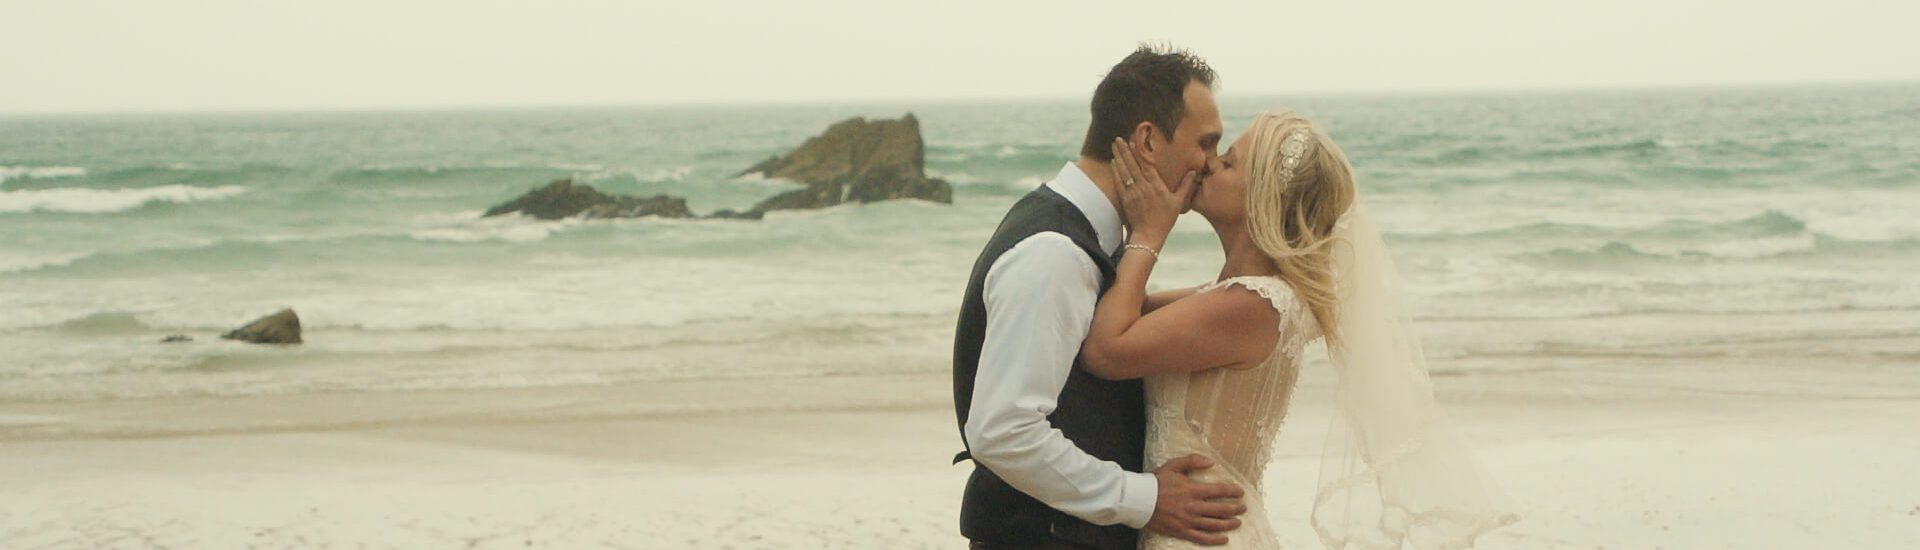 lusty glaze wedding video